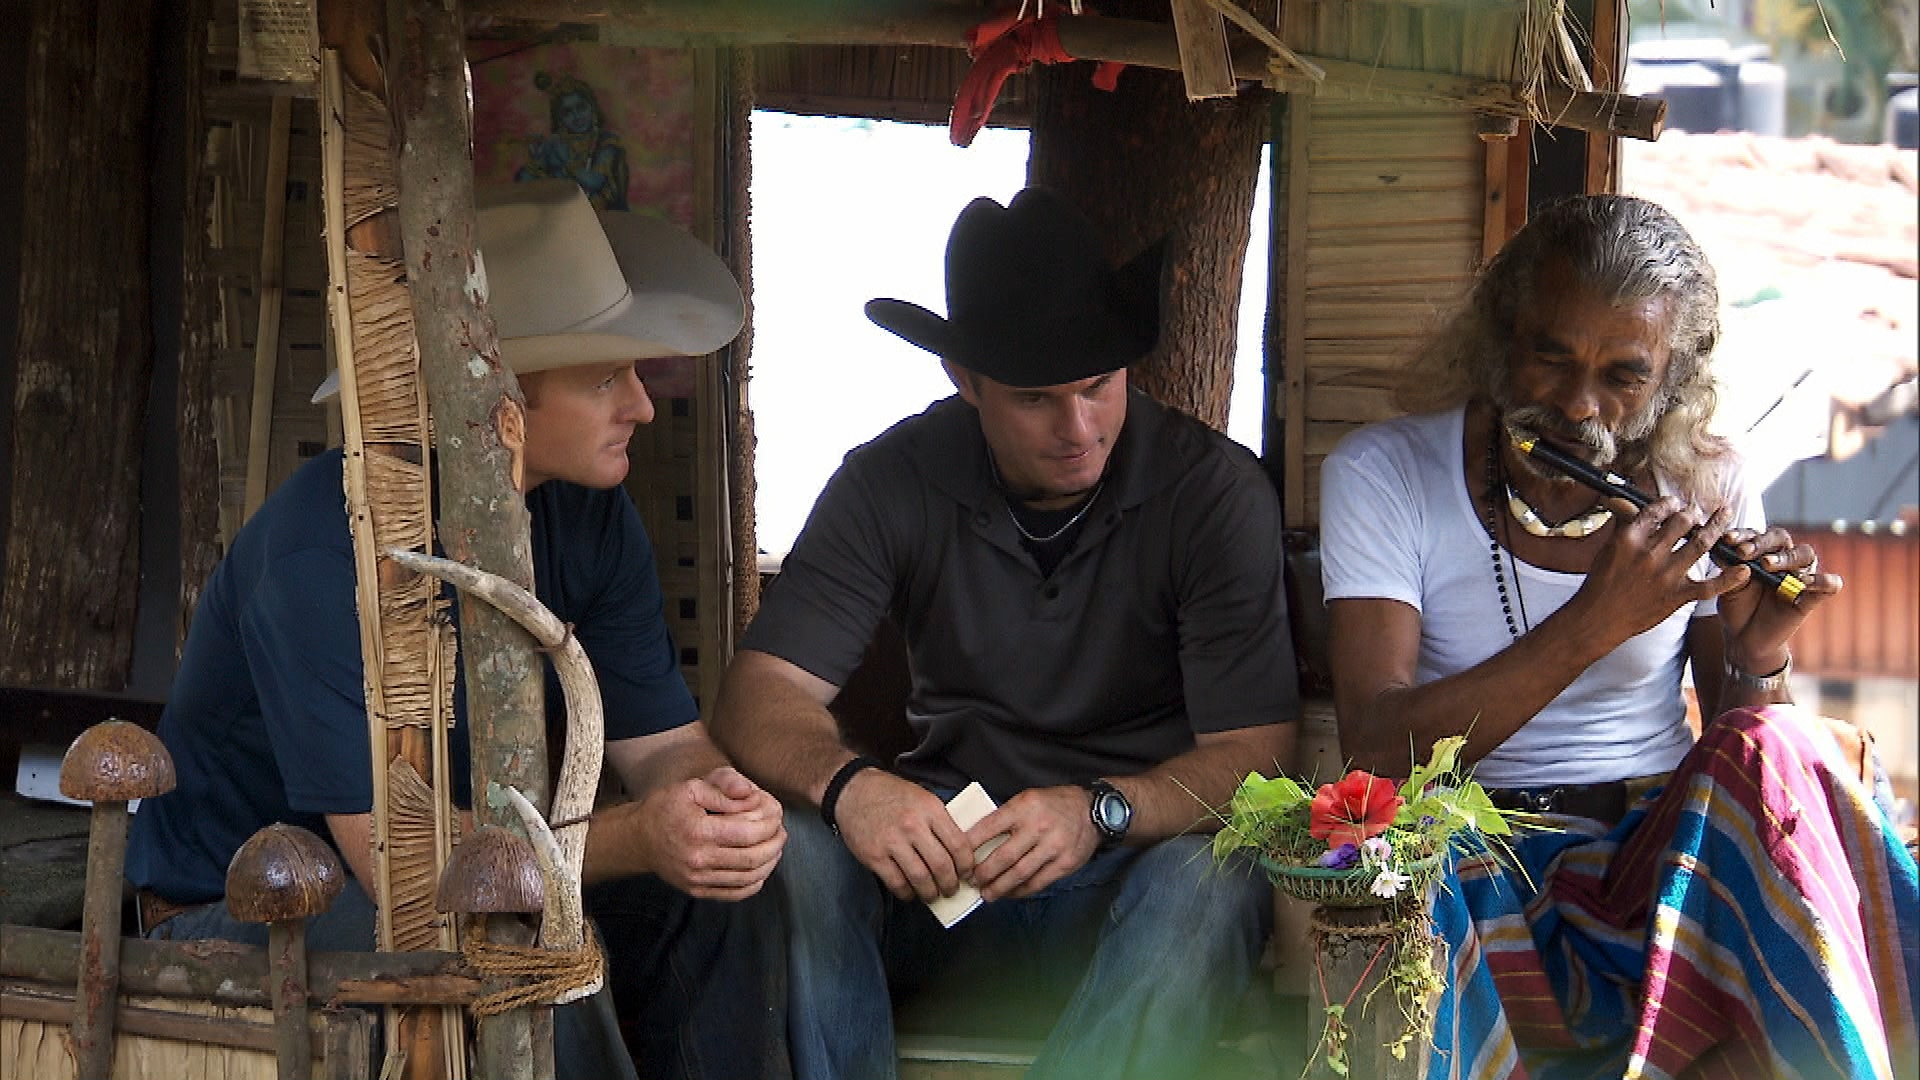 Cowboy brothers in Season 24 Episode 6